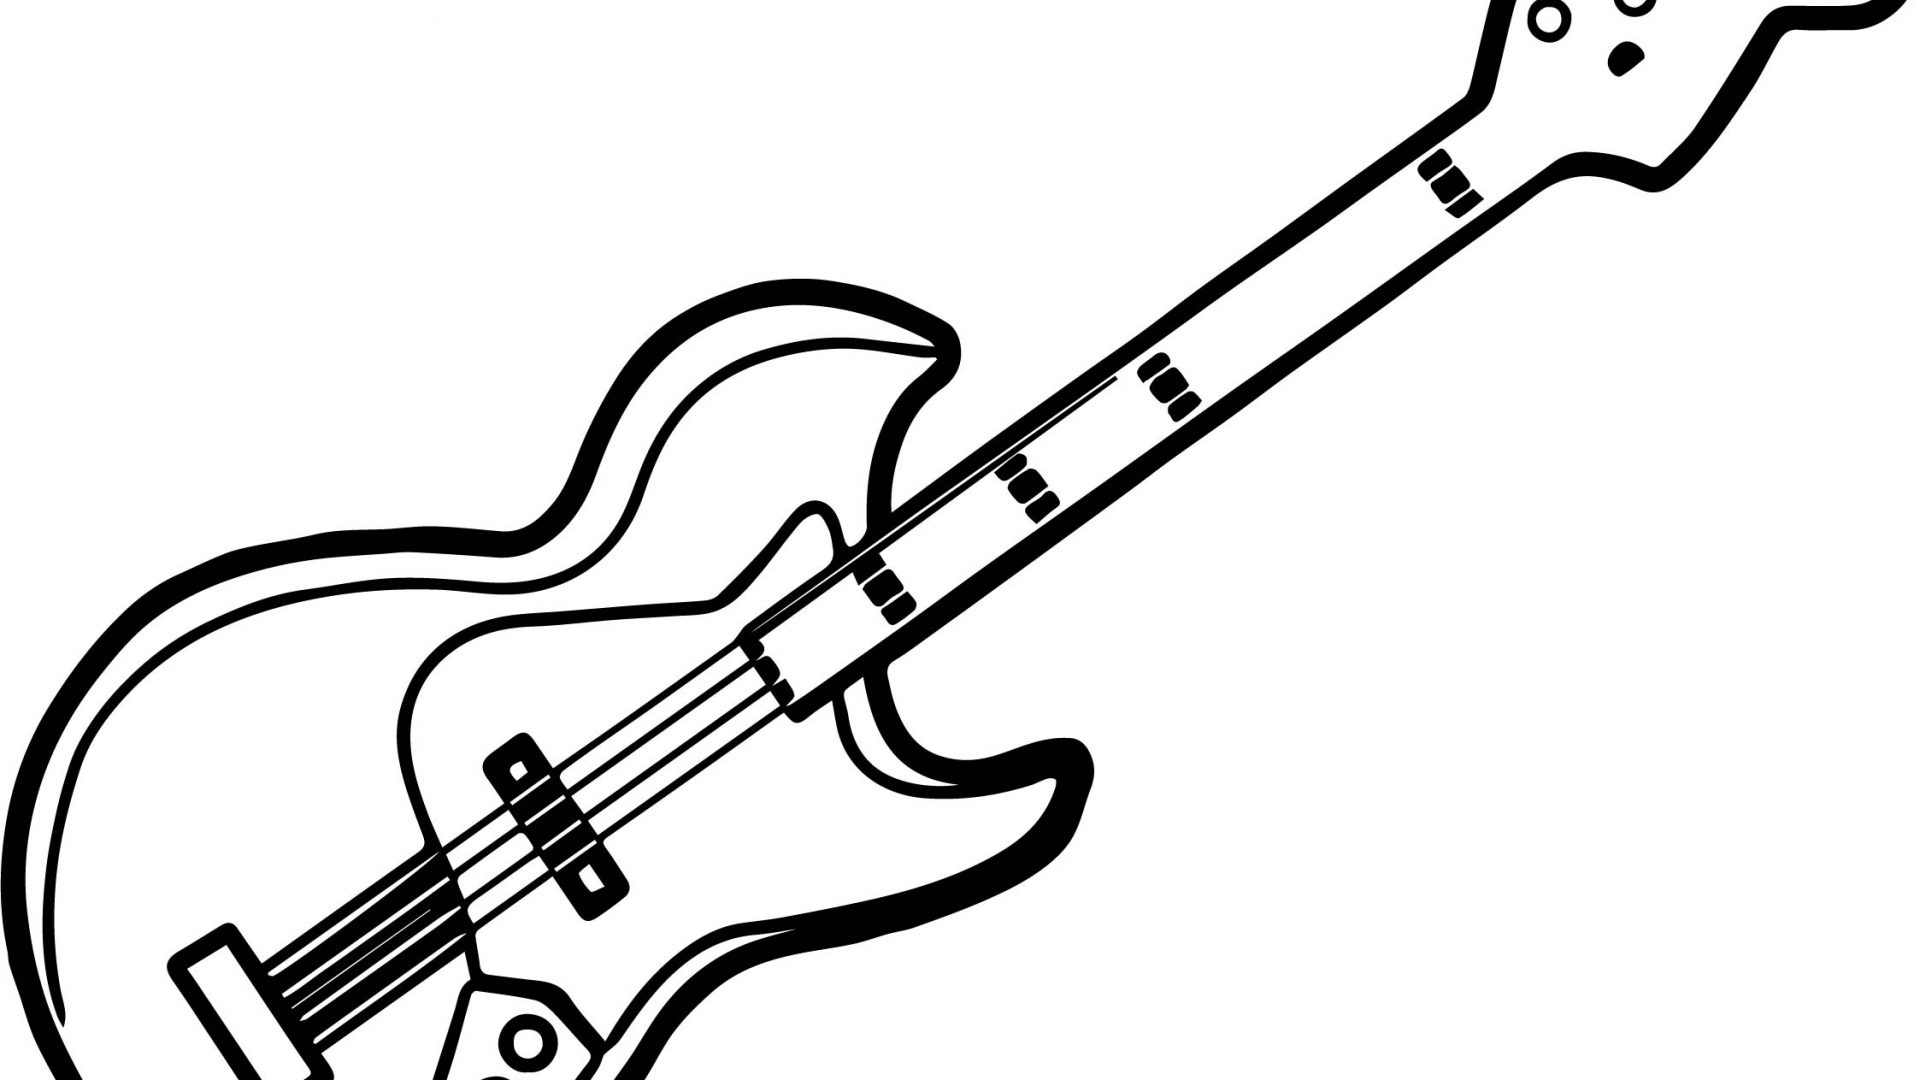 electric guitar coloring page electric guitar drawing at getdrawings free download guitar coloring page electric